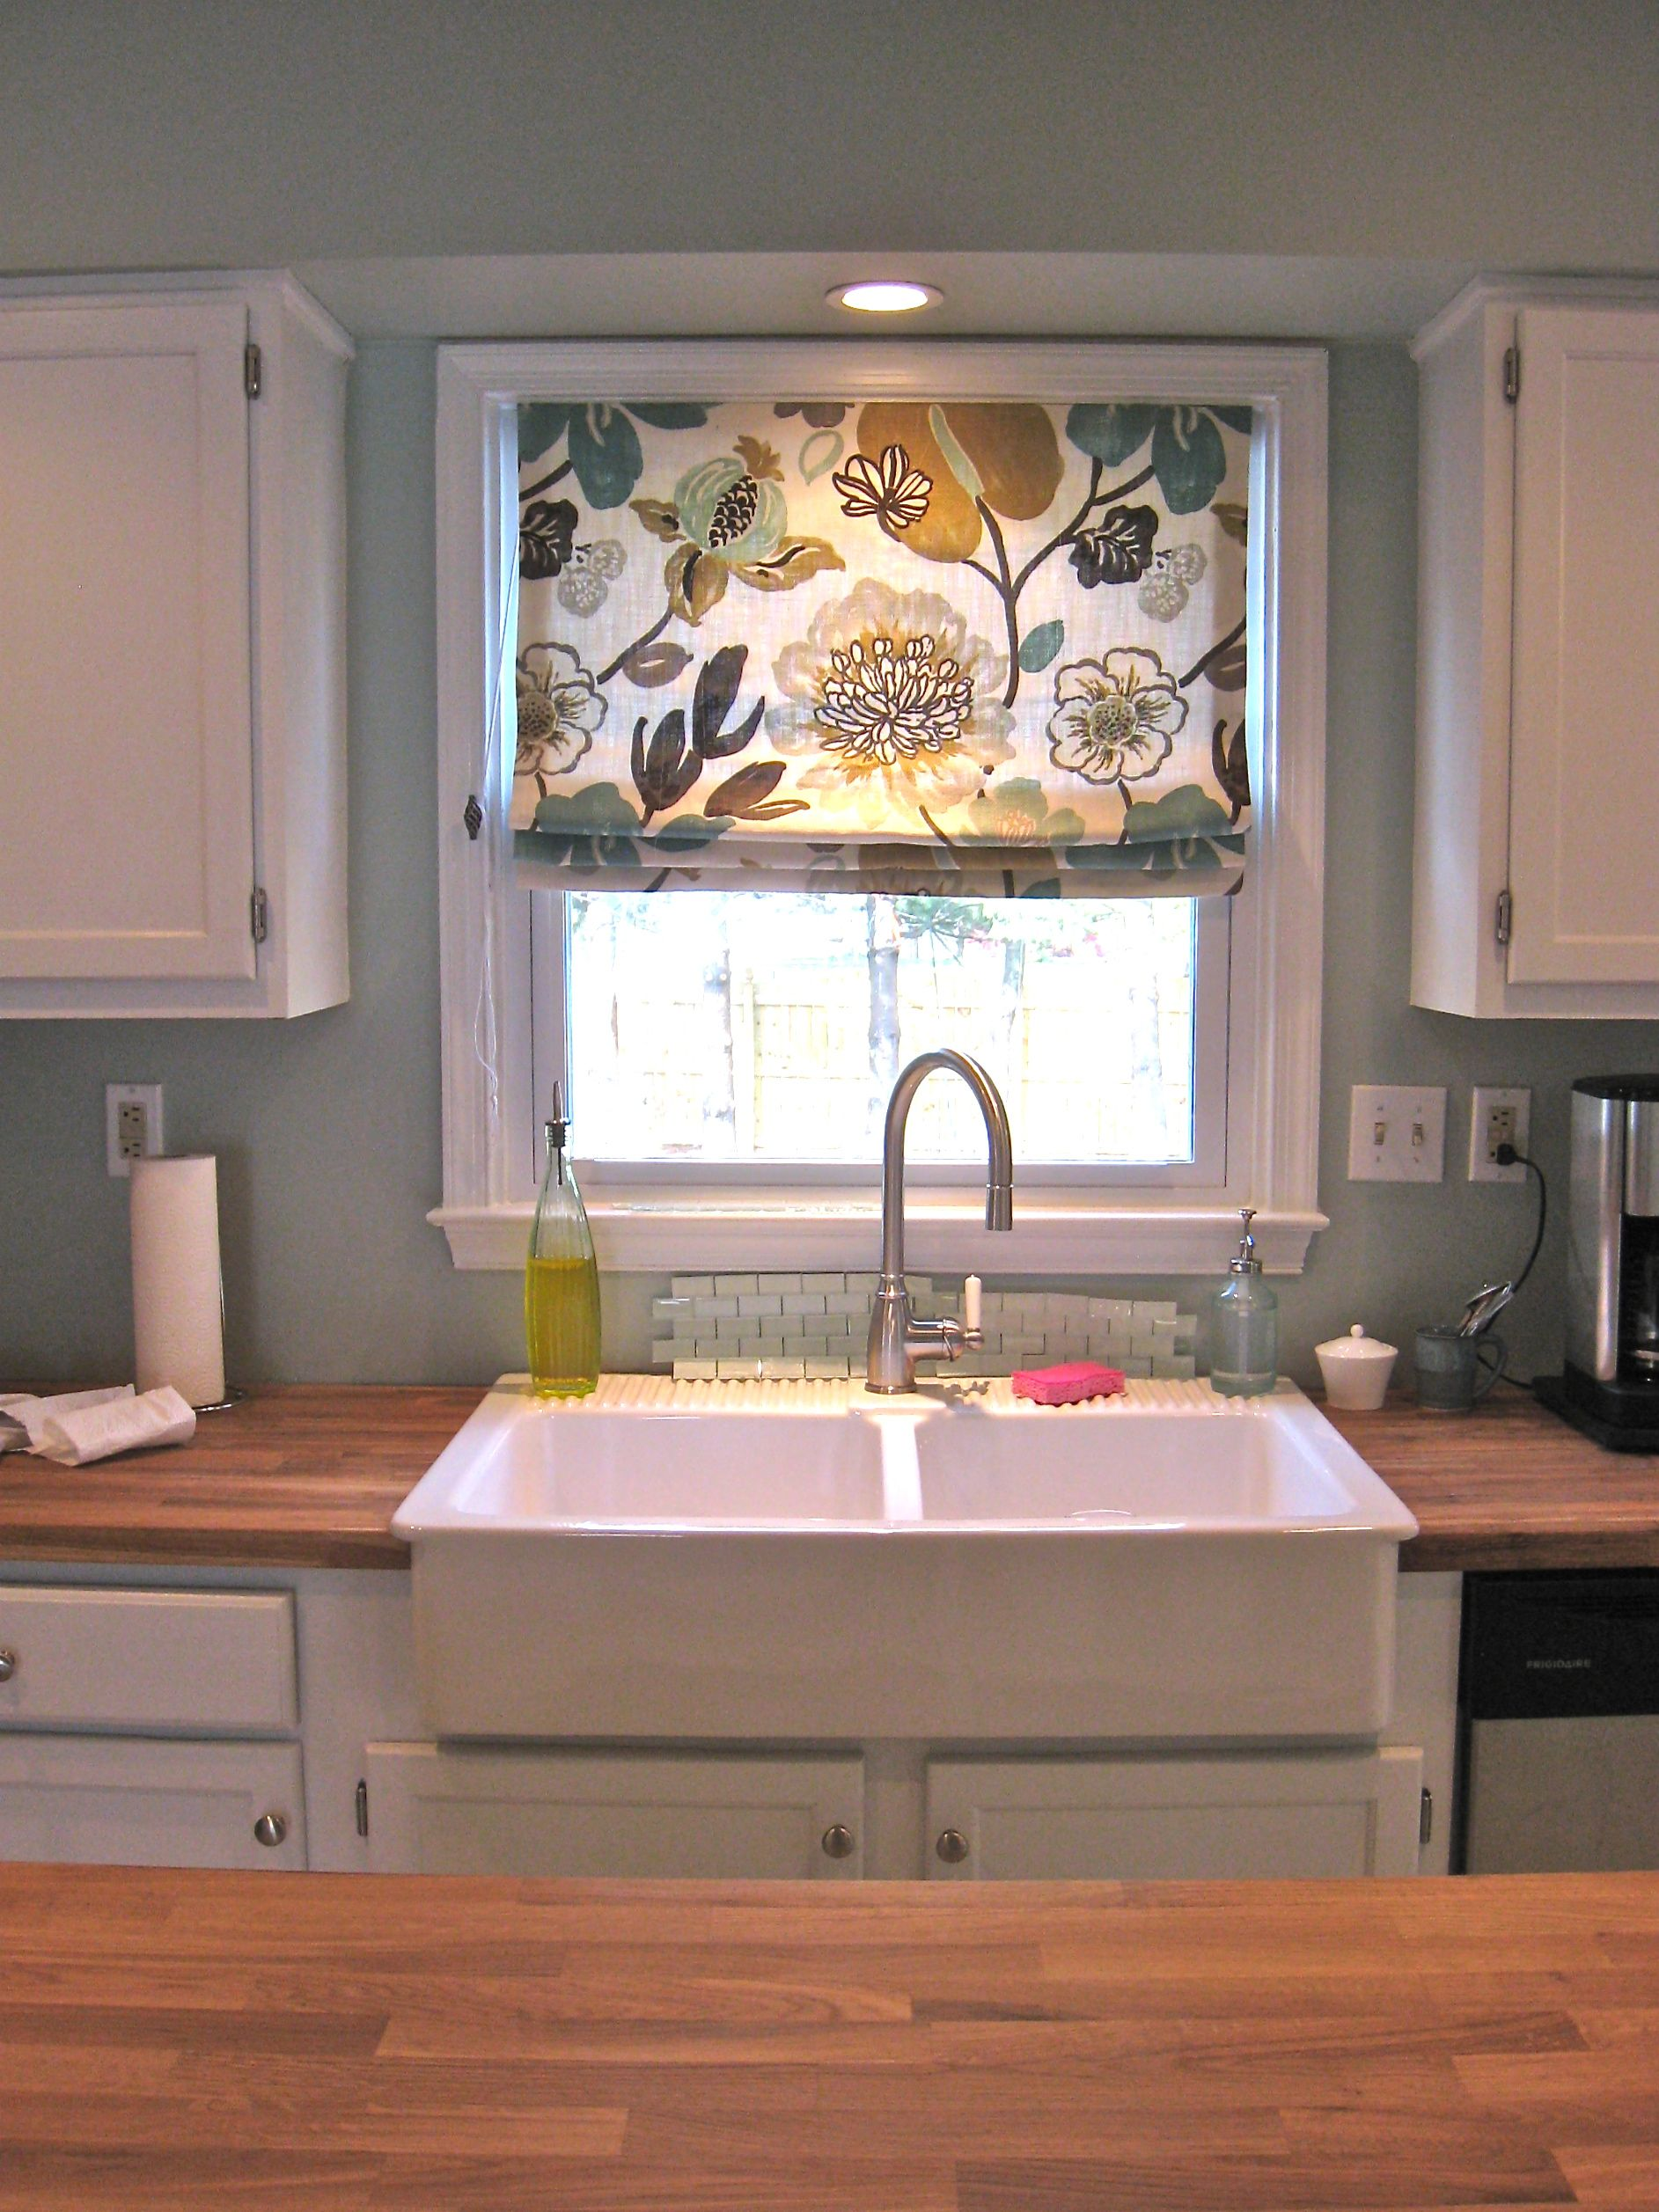 Our Farmhouse Sink From Ikea Makes Doing Dishes Fun Nah Ikea Farmhouse Sink Kitchen Sink Window Kitchen Window Coverings